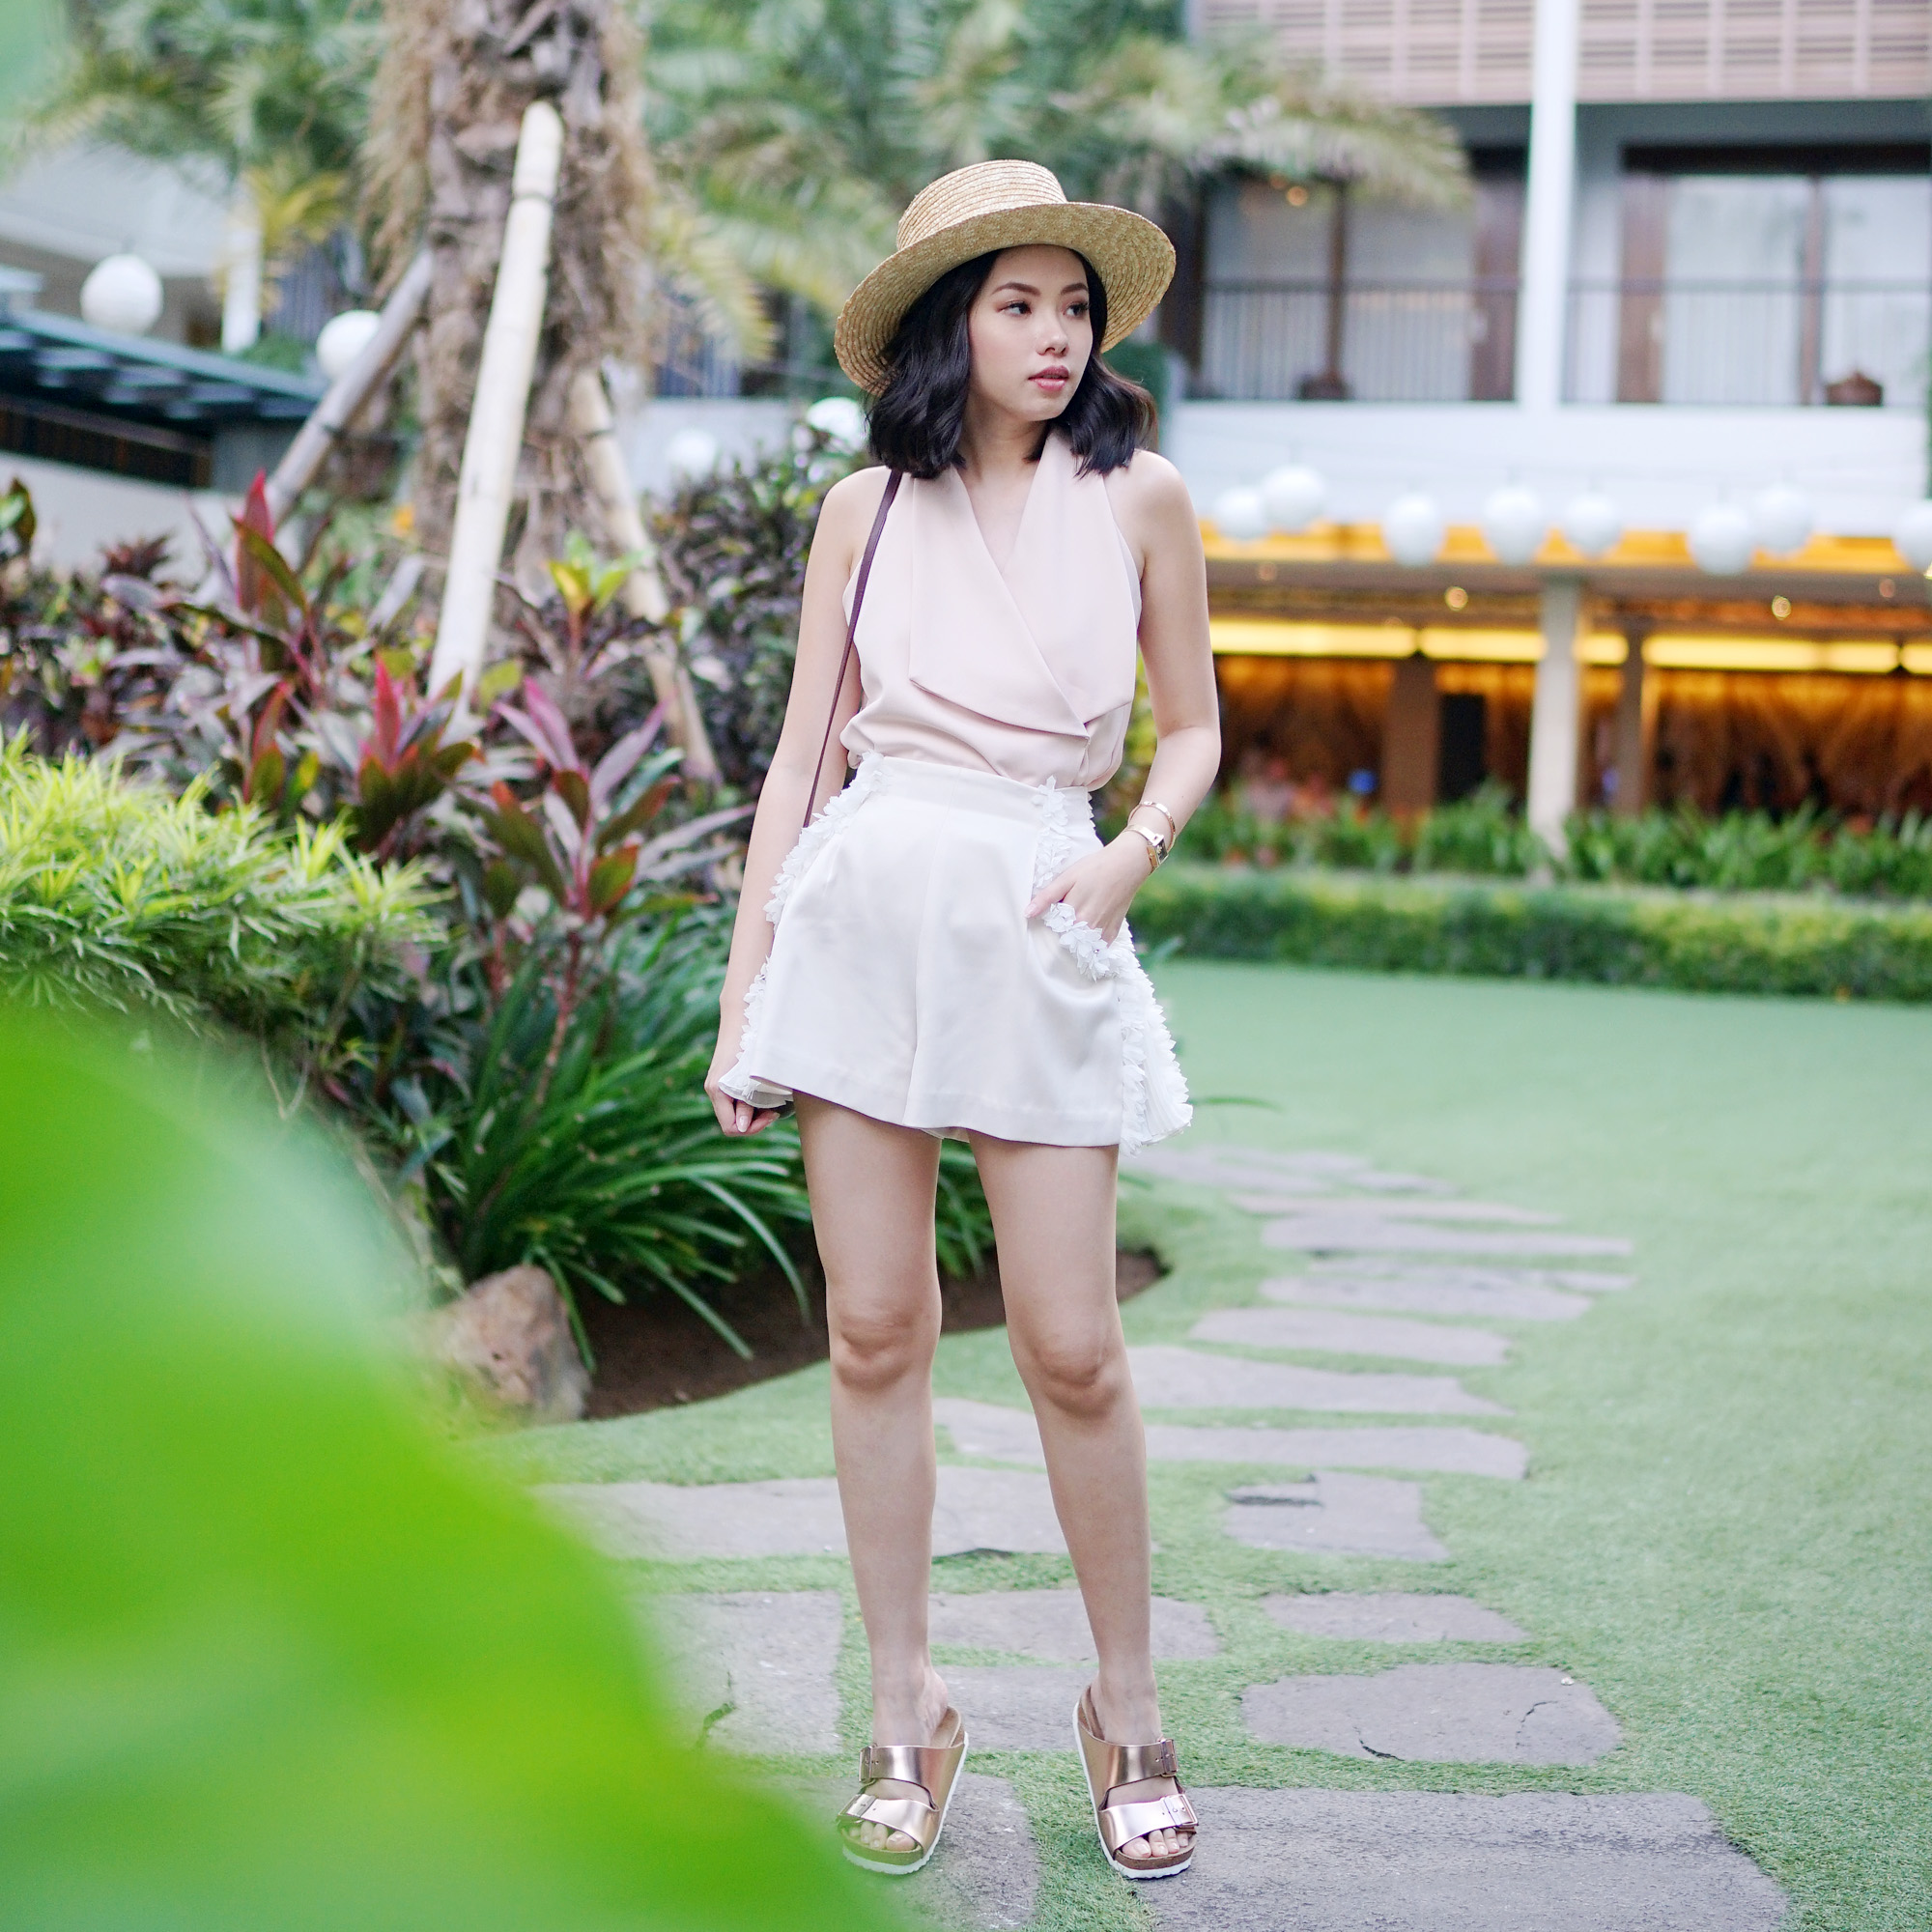 HOW TO DRESS FASHIONABLY IN TROPICAL ISLAND  WITHOUT SHOWING TOO     Sleeveless tops are decent and feminine     that is why they are so perfect  for your tropical getaway  Paired with a loose shorts  you are good to go